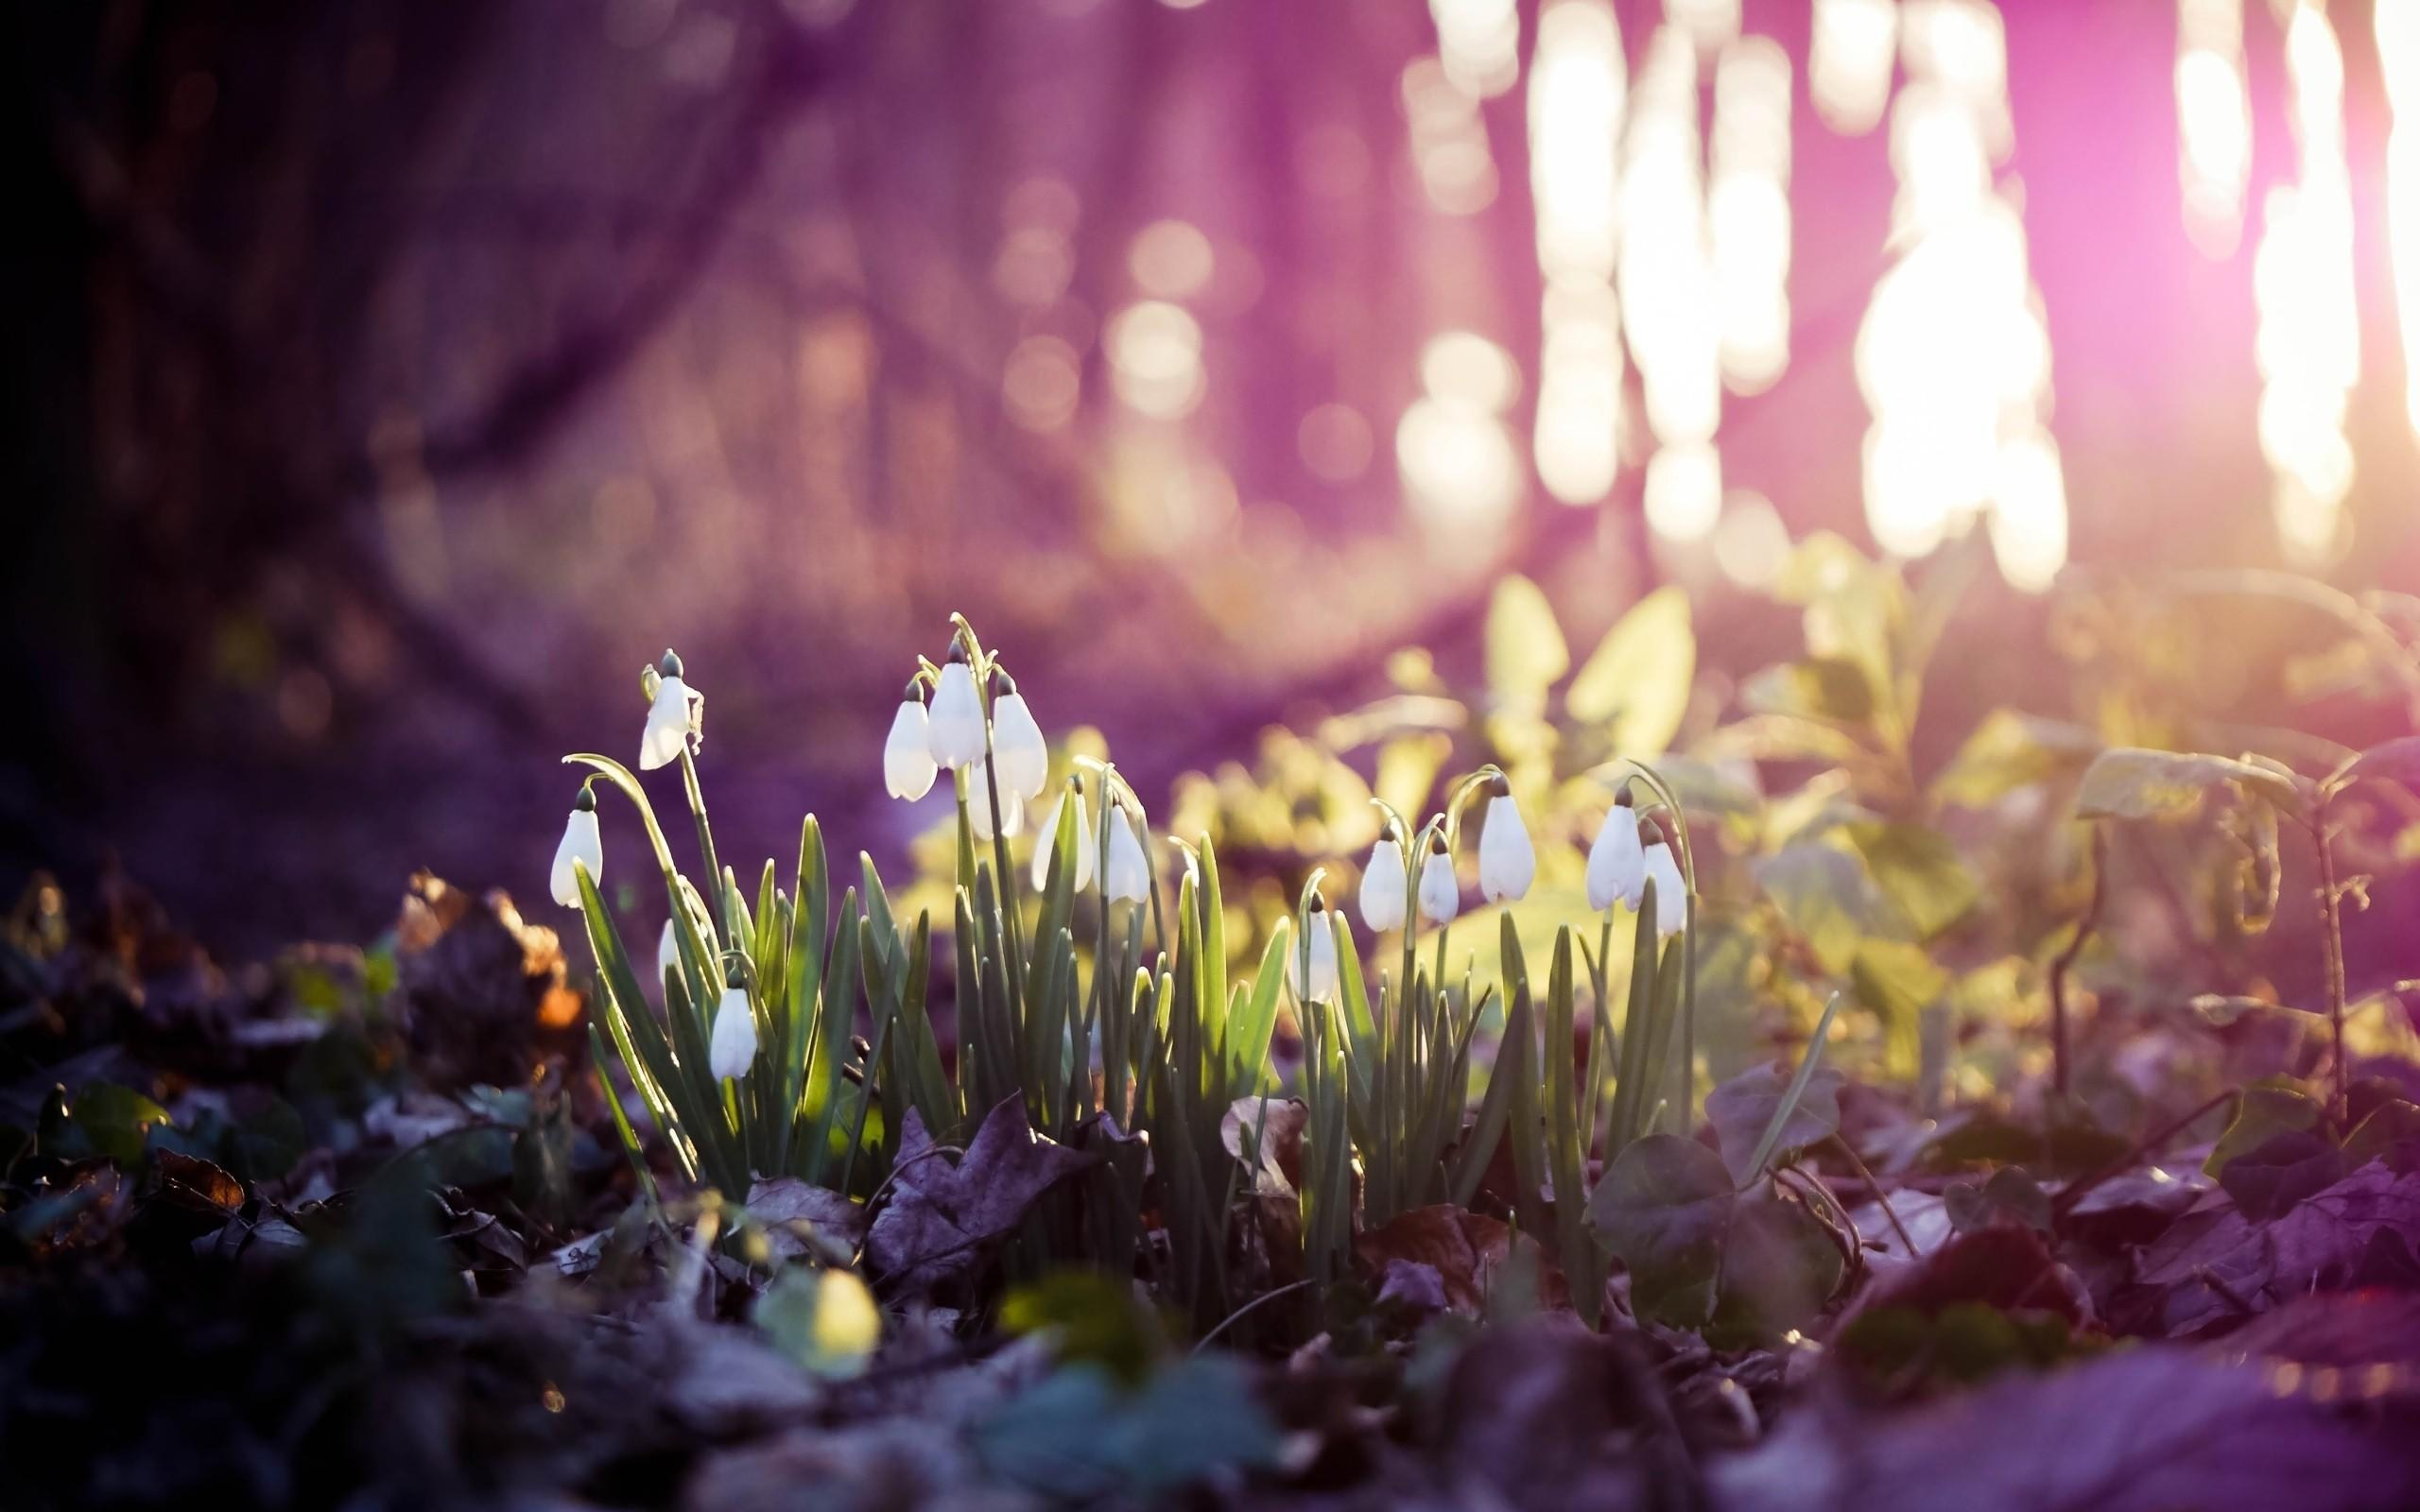 Hd wallpaper spring - Modern Fantastic Spring Forest The Wallpapers 2560x1600px Hd